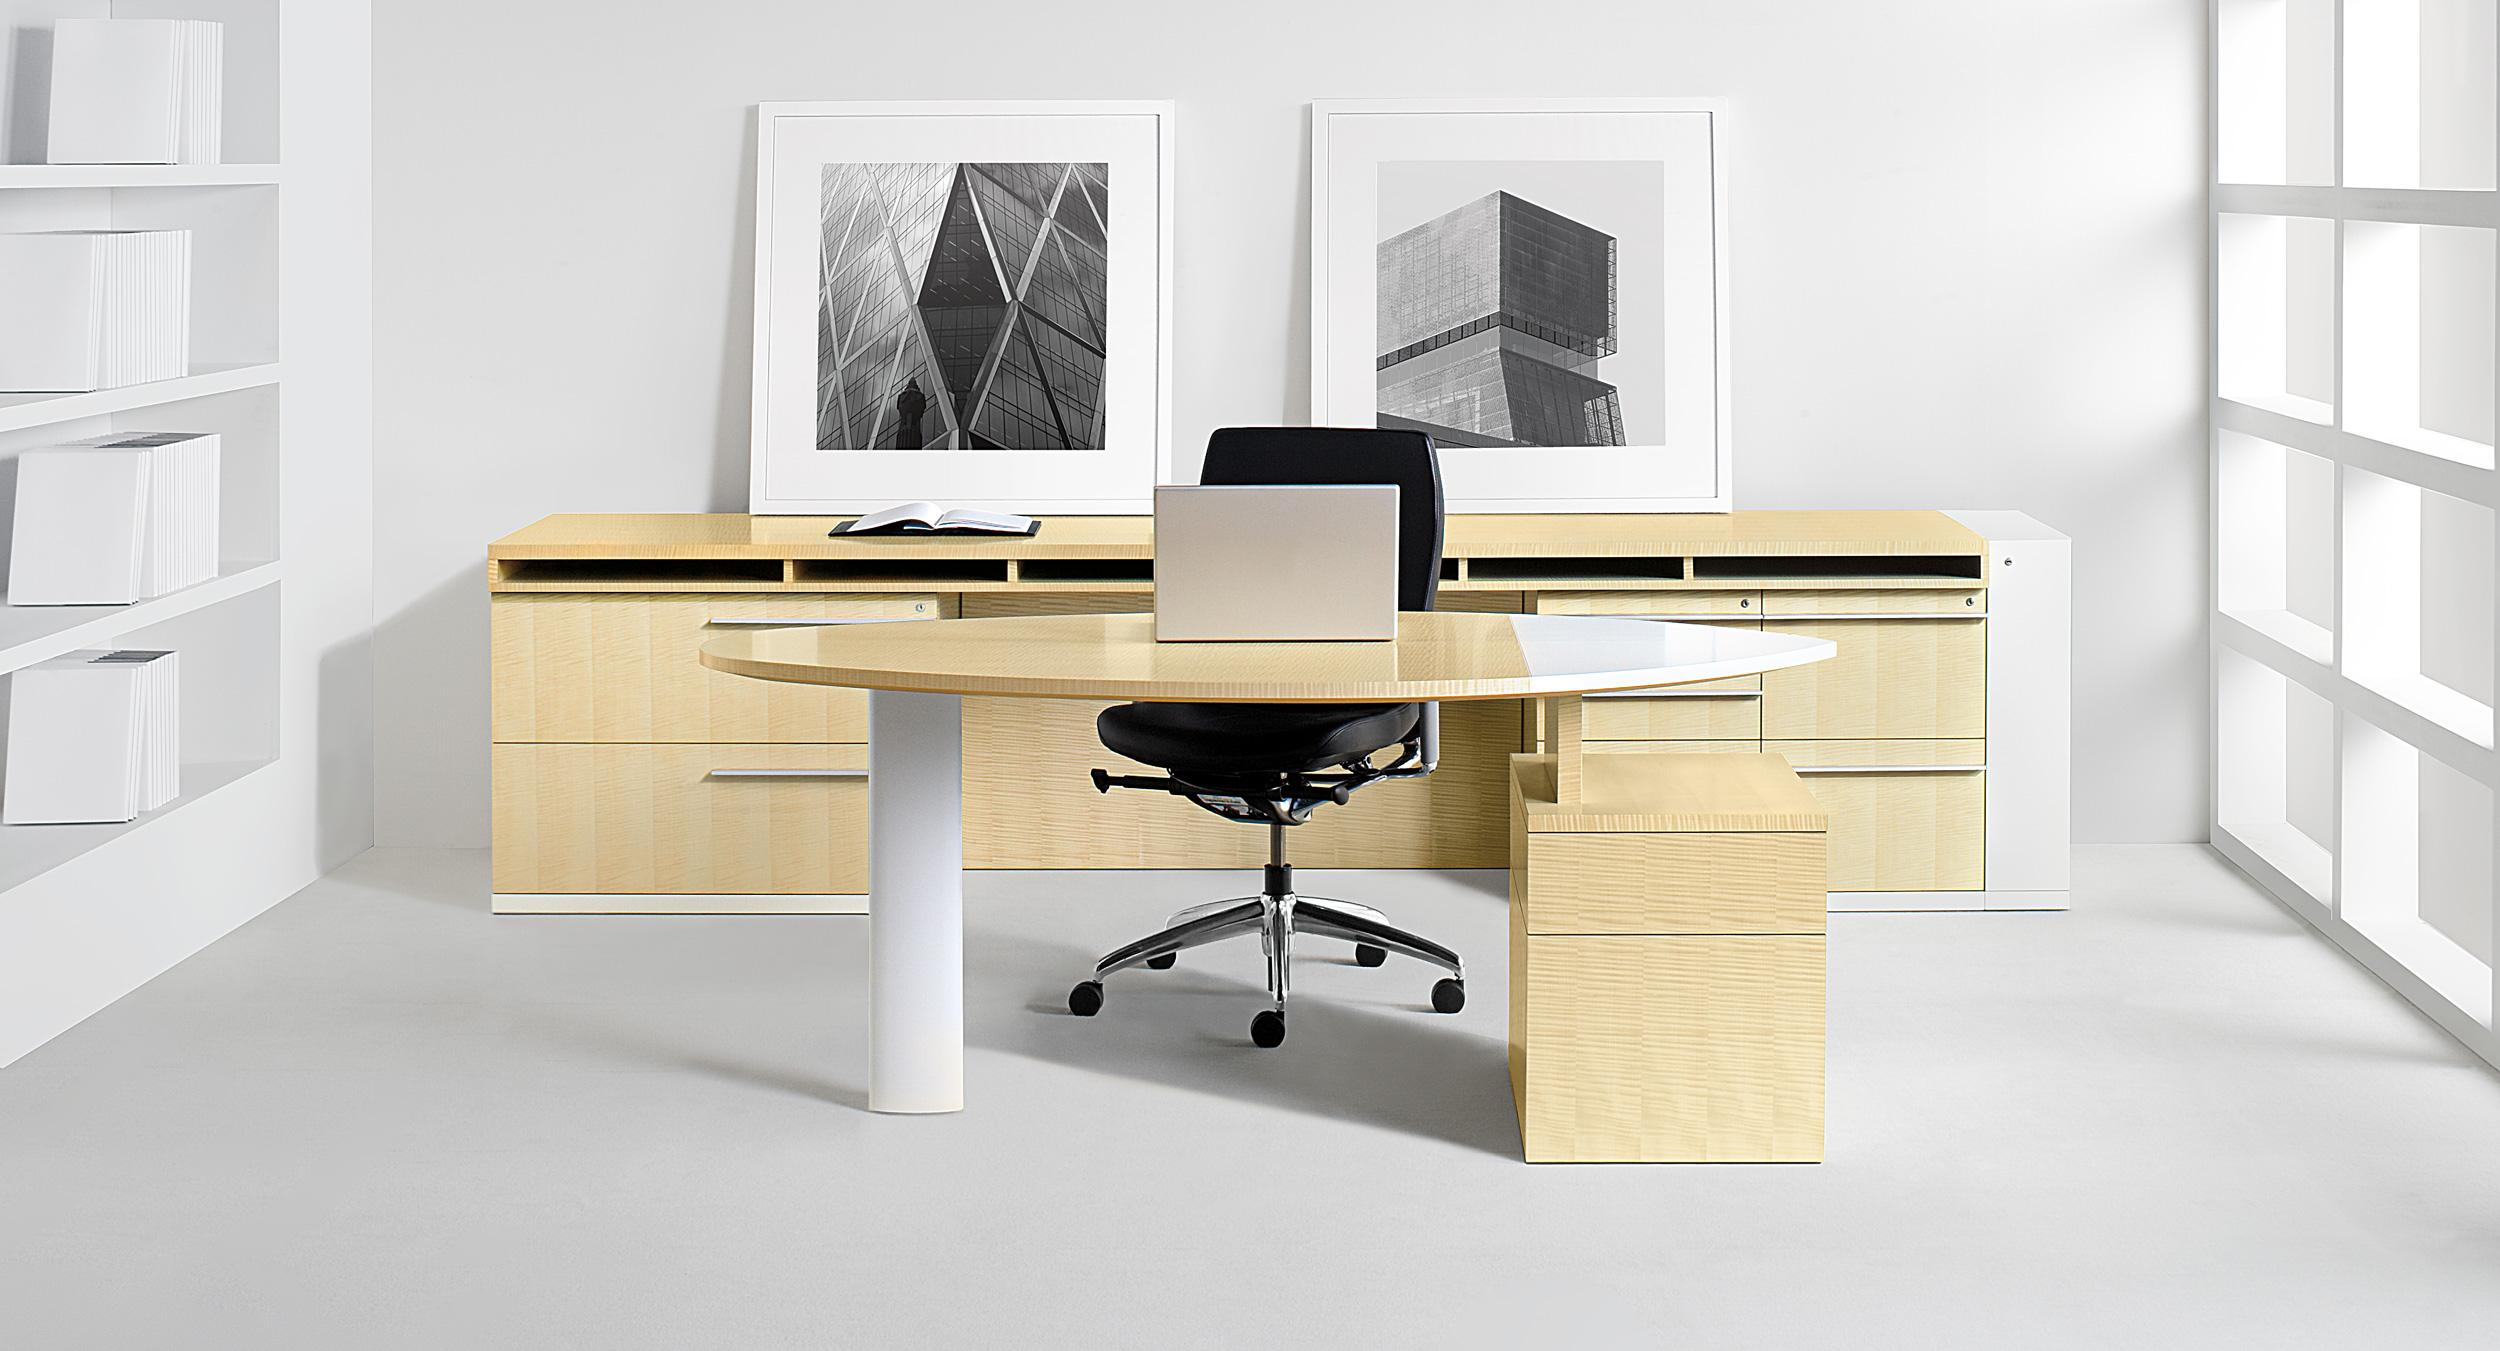 A light-scale desk sits in front of a storage credenza.   The credenza surface includes project slots for active paperwork.